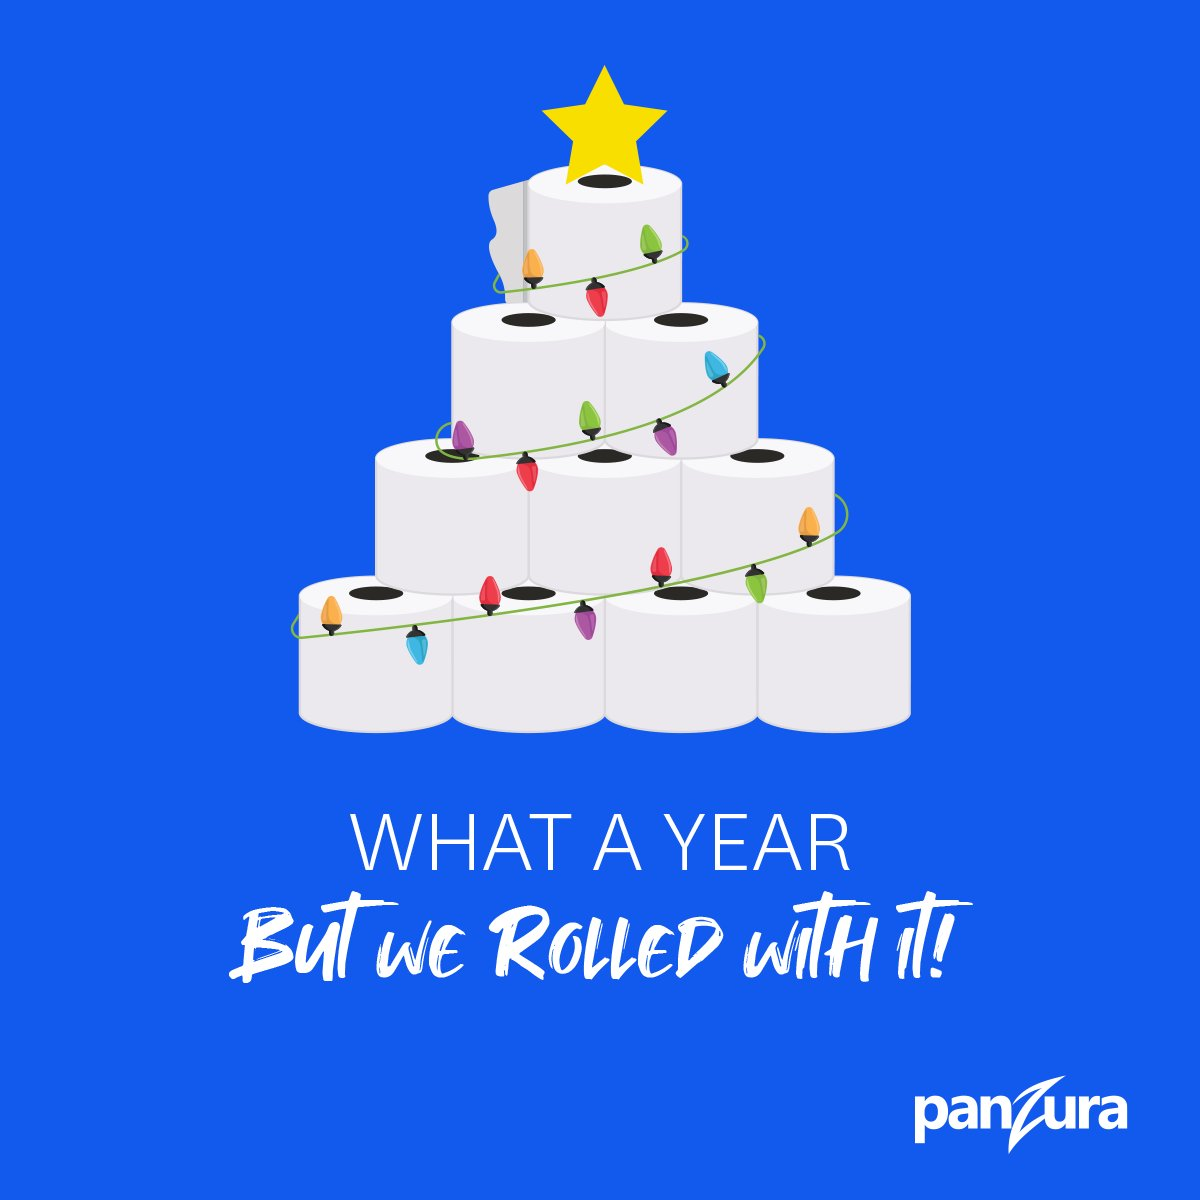 No matter how crazy things got in this eventful year, we rolled with the punches and brought awesomeness to all of our partners and customers! https://t.co/joUotcyOjI